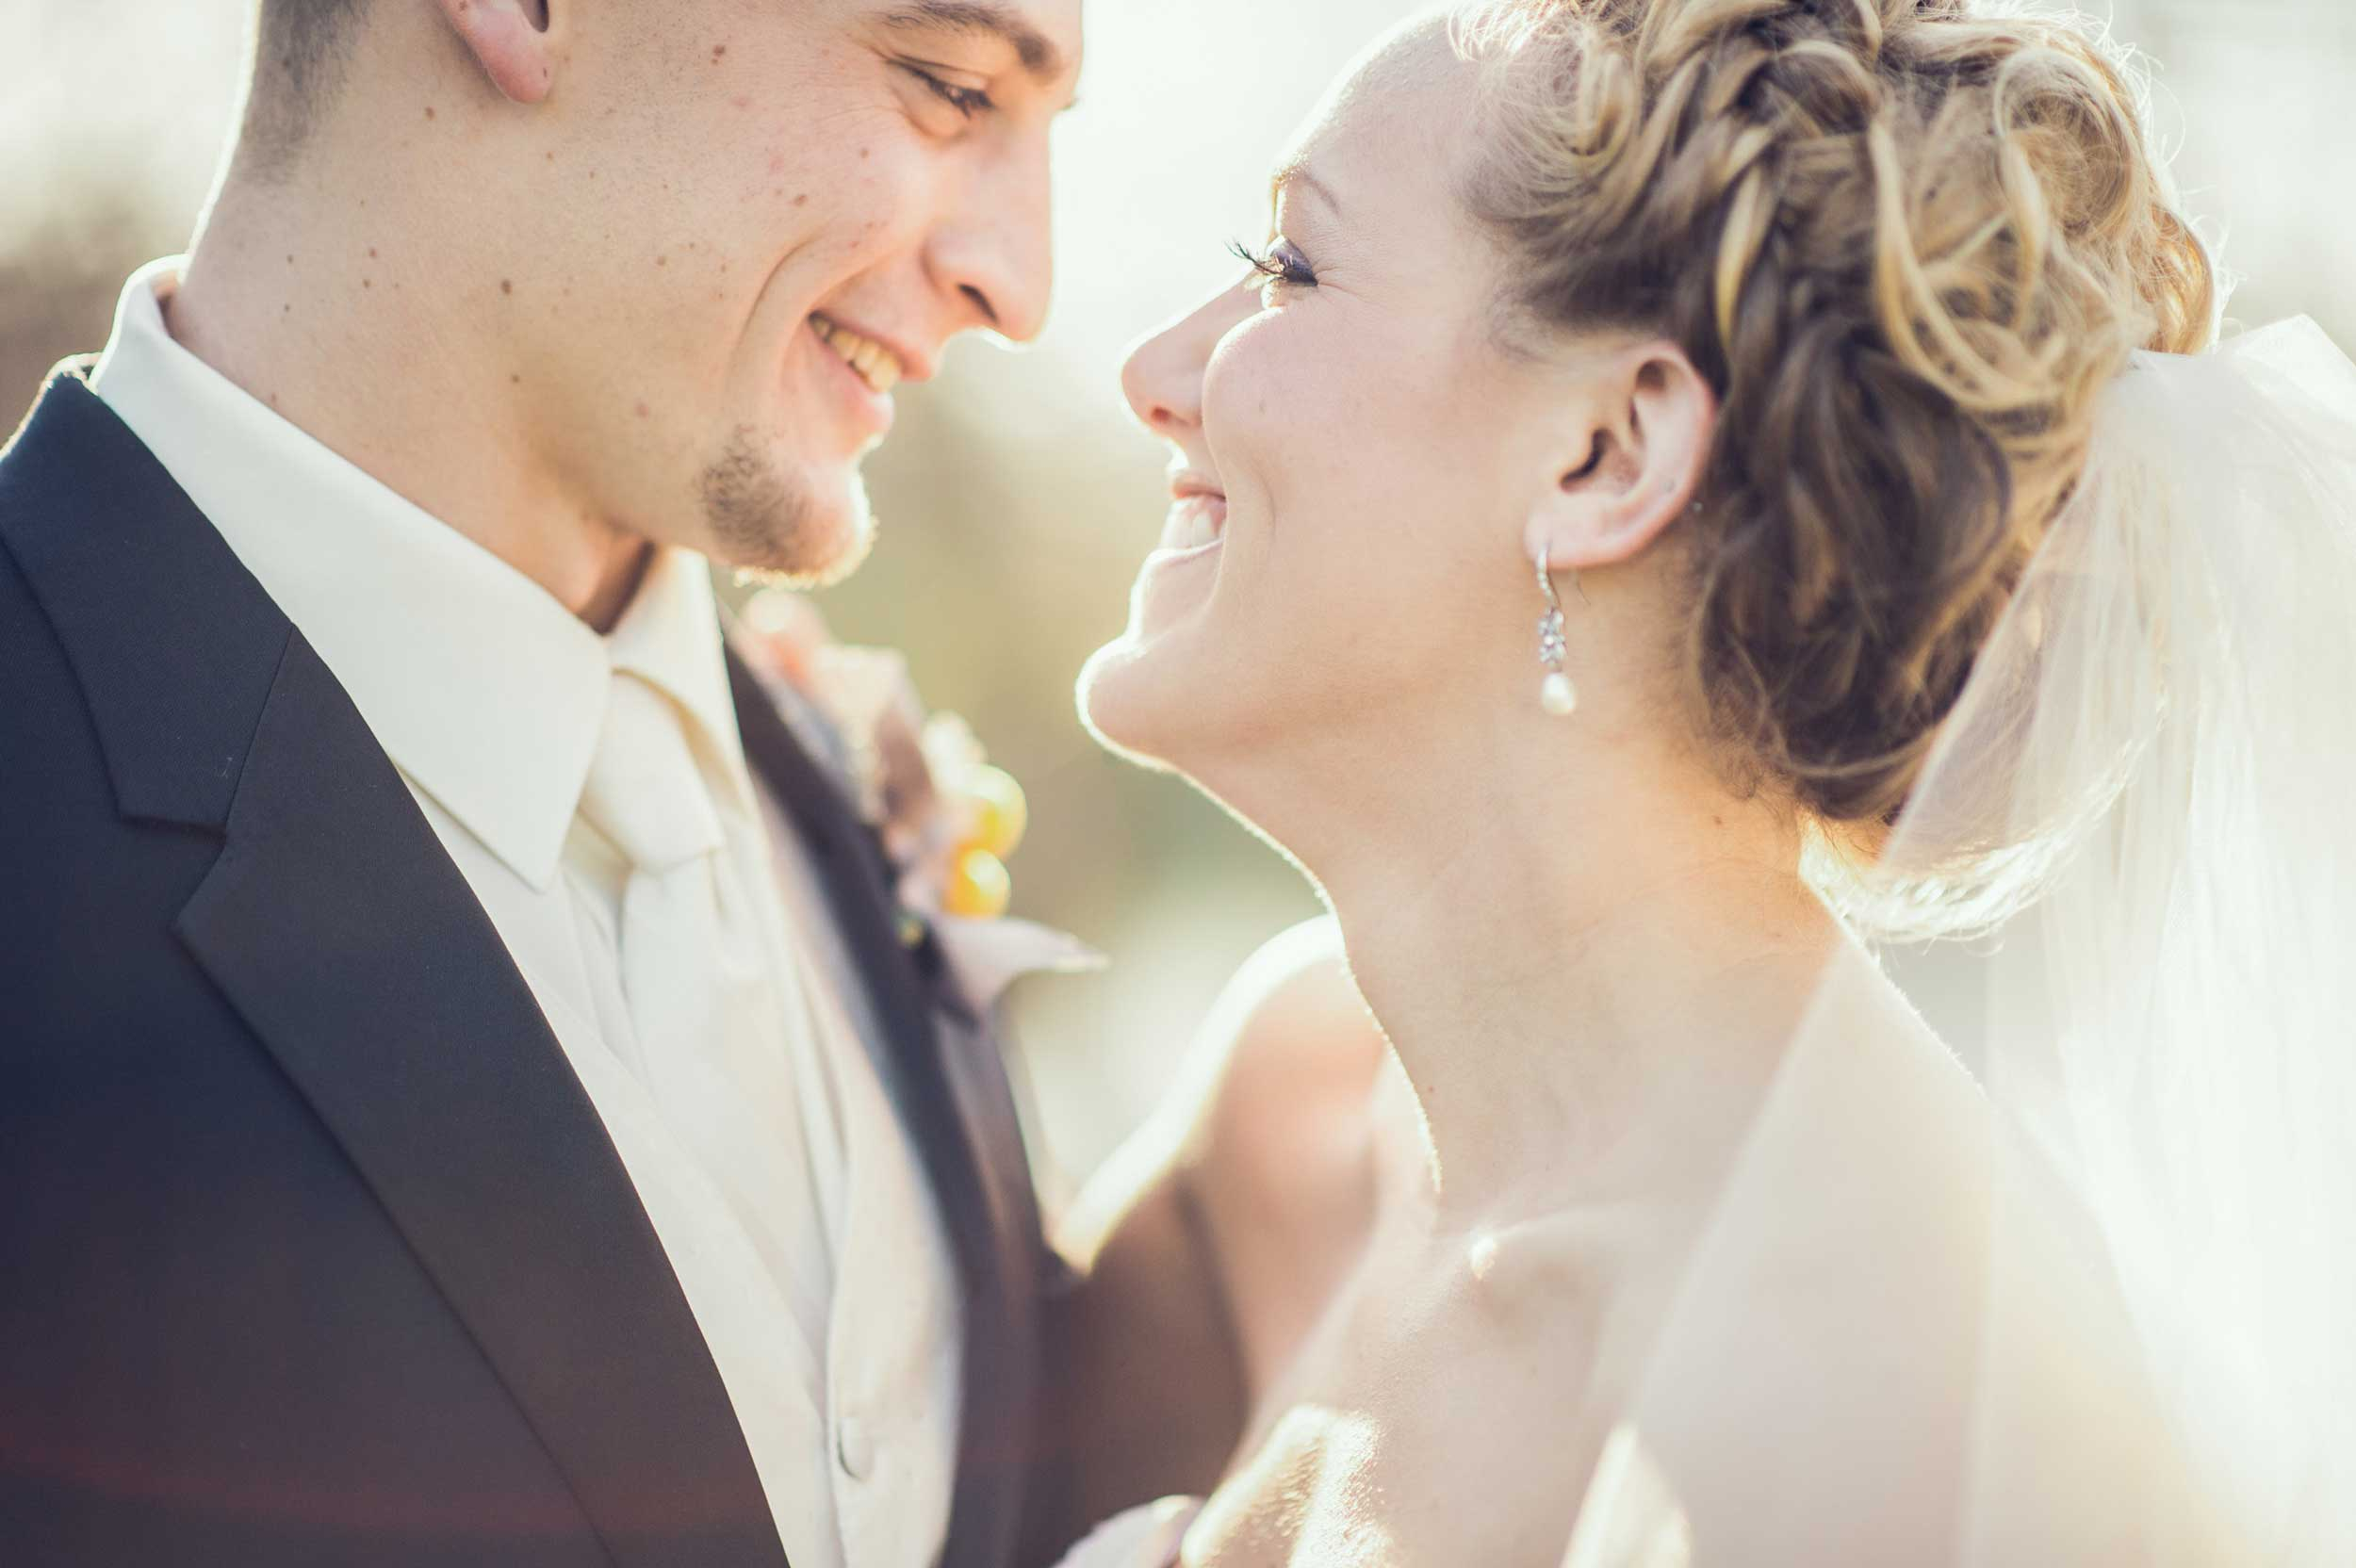 Sunset wedding photography at The Pontifical College Josephinum